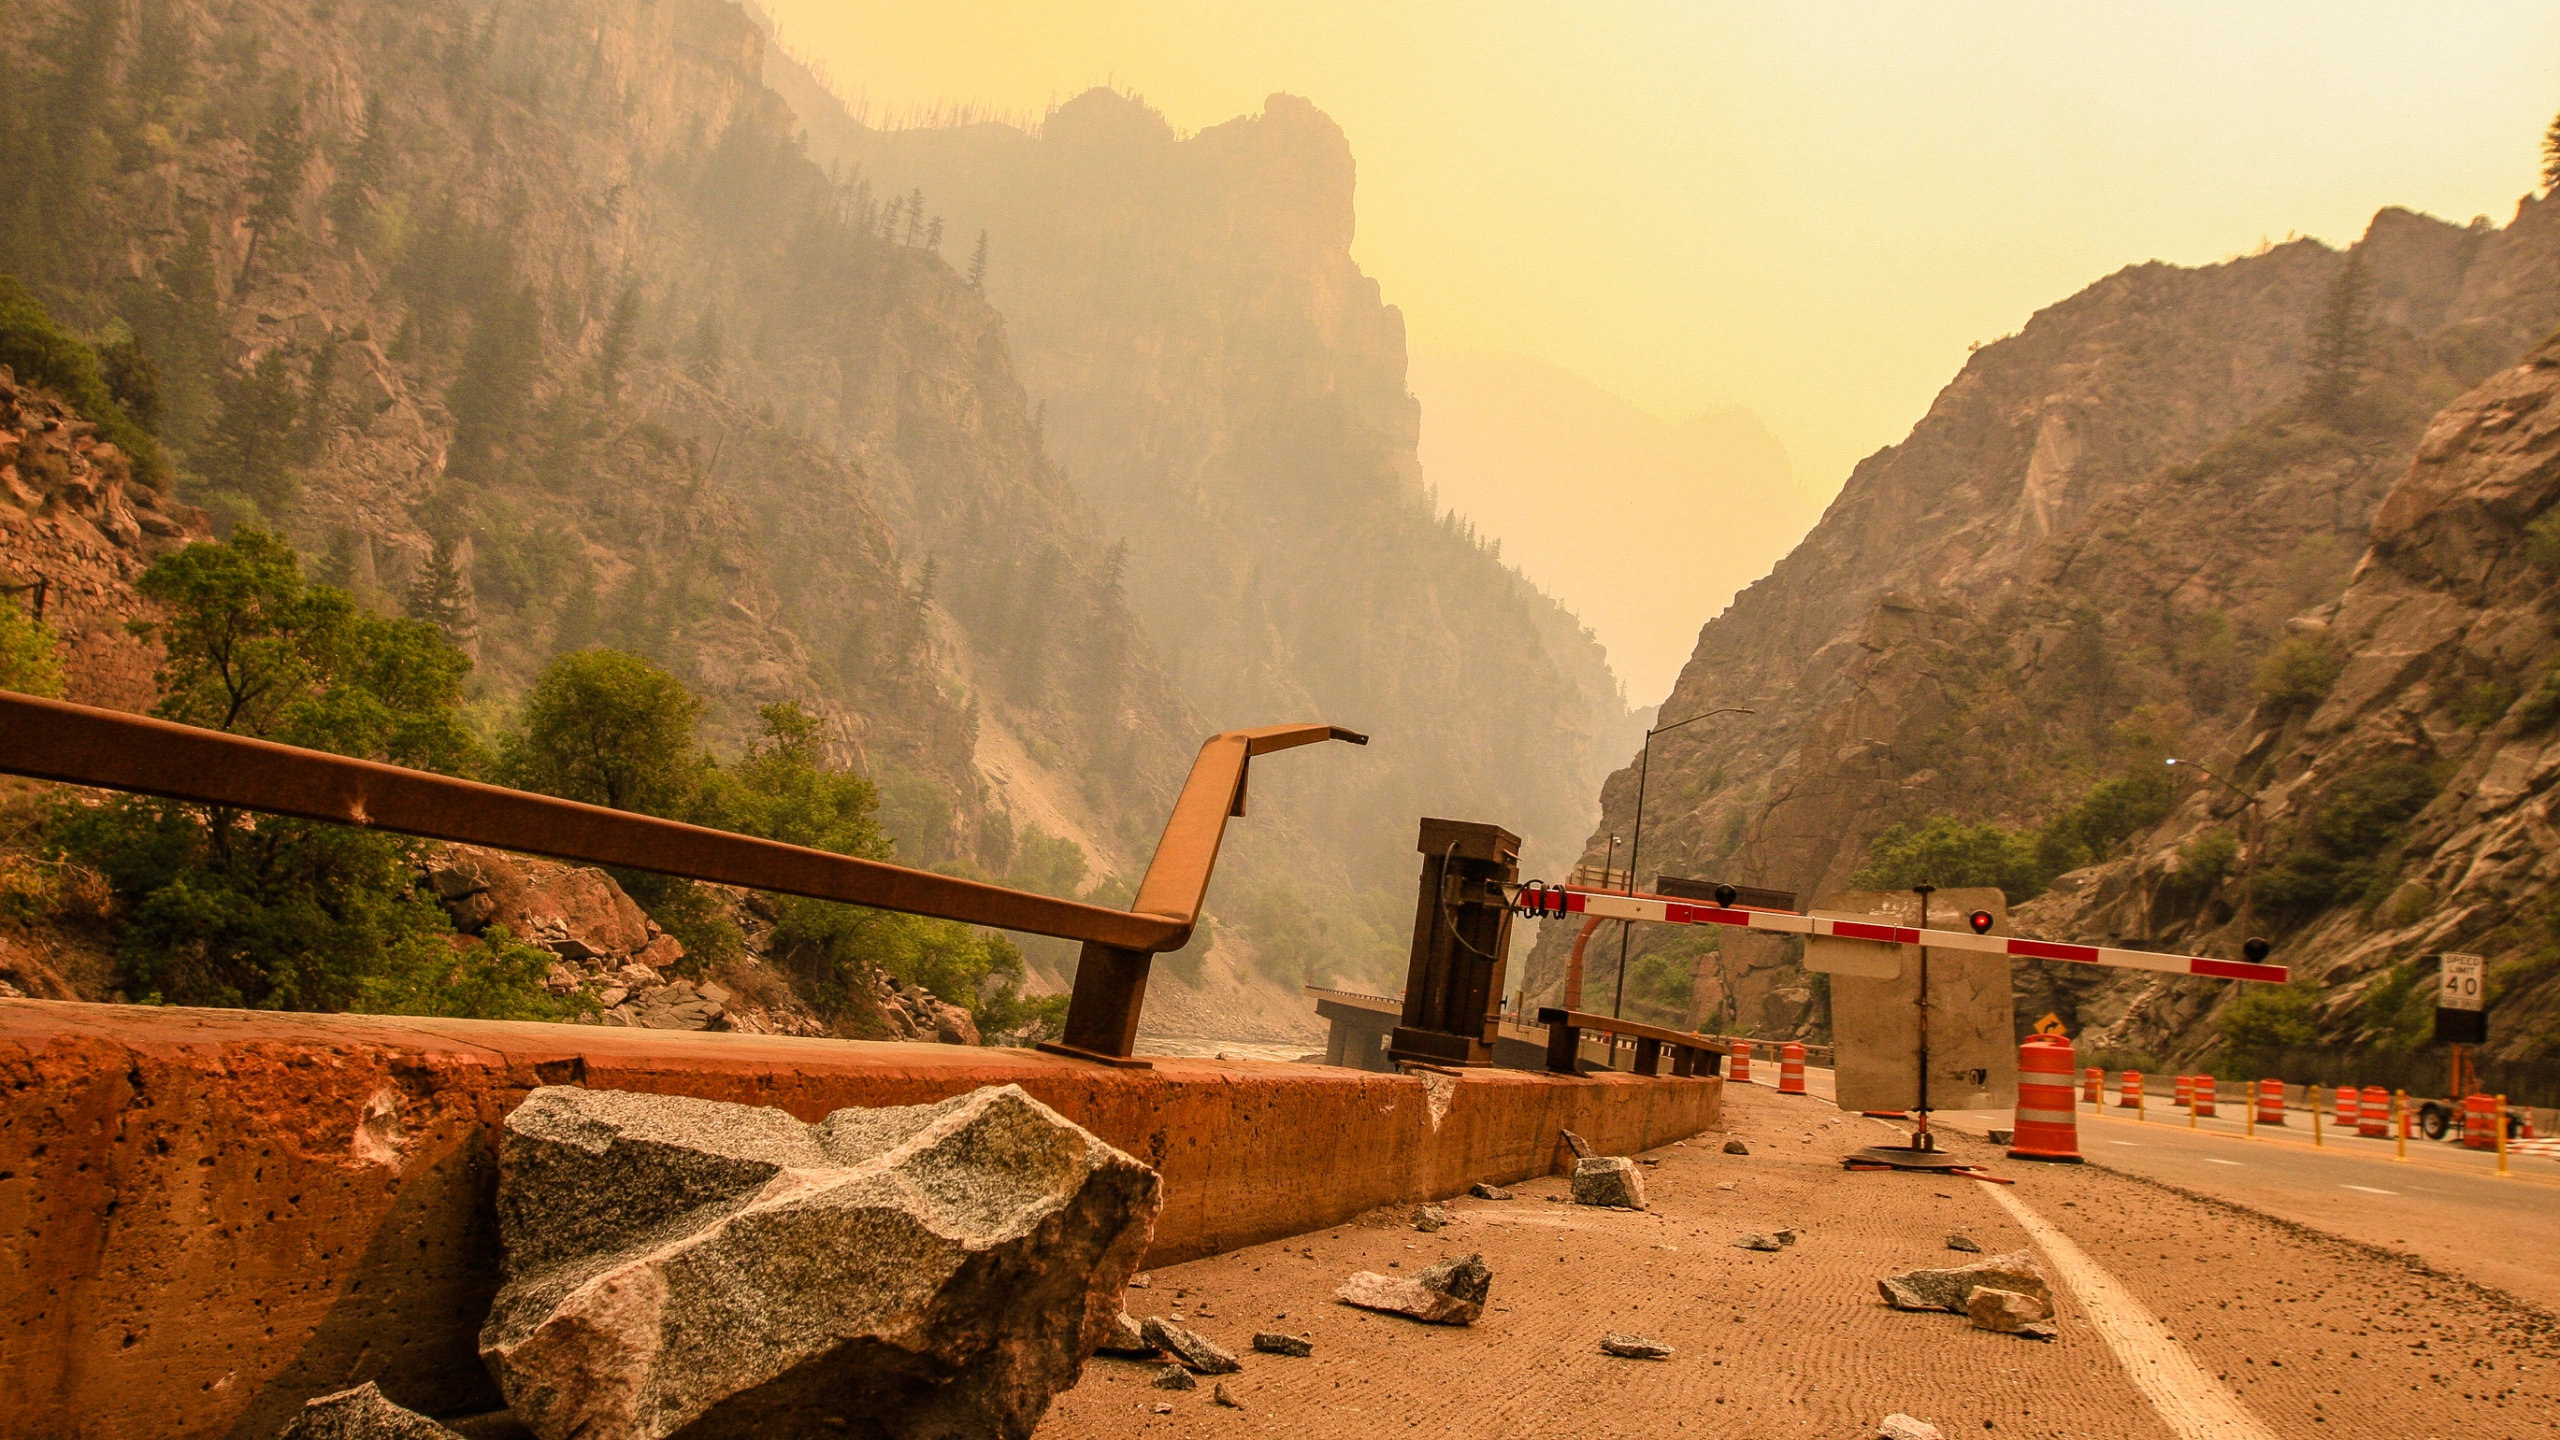 Rock falls continue to pummel Glenwood Canyon as the Grizzly Creek fire moves away Sunday, Aug. 16, 2020, near Glenwood Springs, Colo. With the vegetation burned away, nothing is there to anchor the rocks to the mountainside. (Chris Dillmann/Vail Daily via AP)